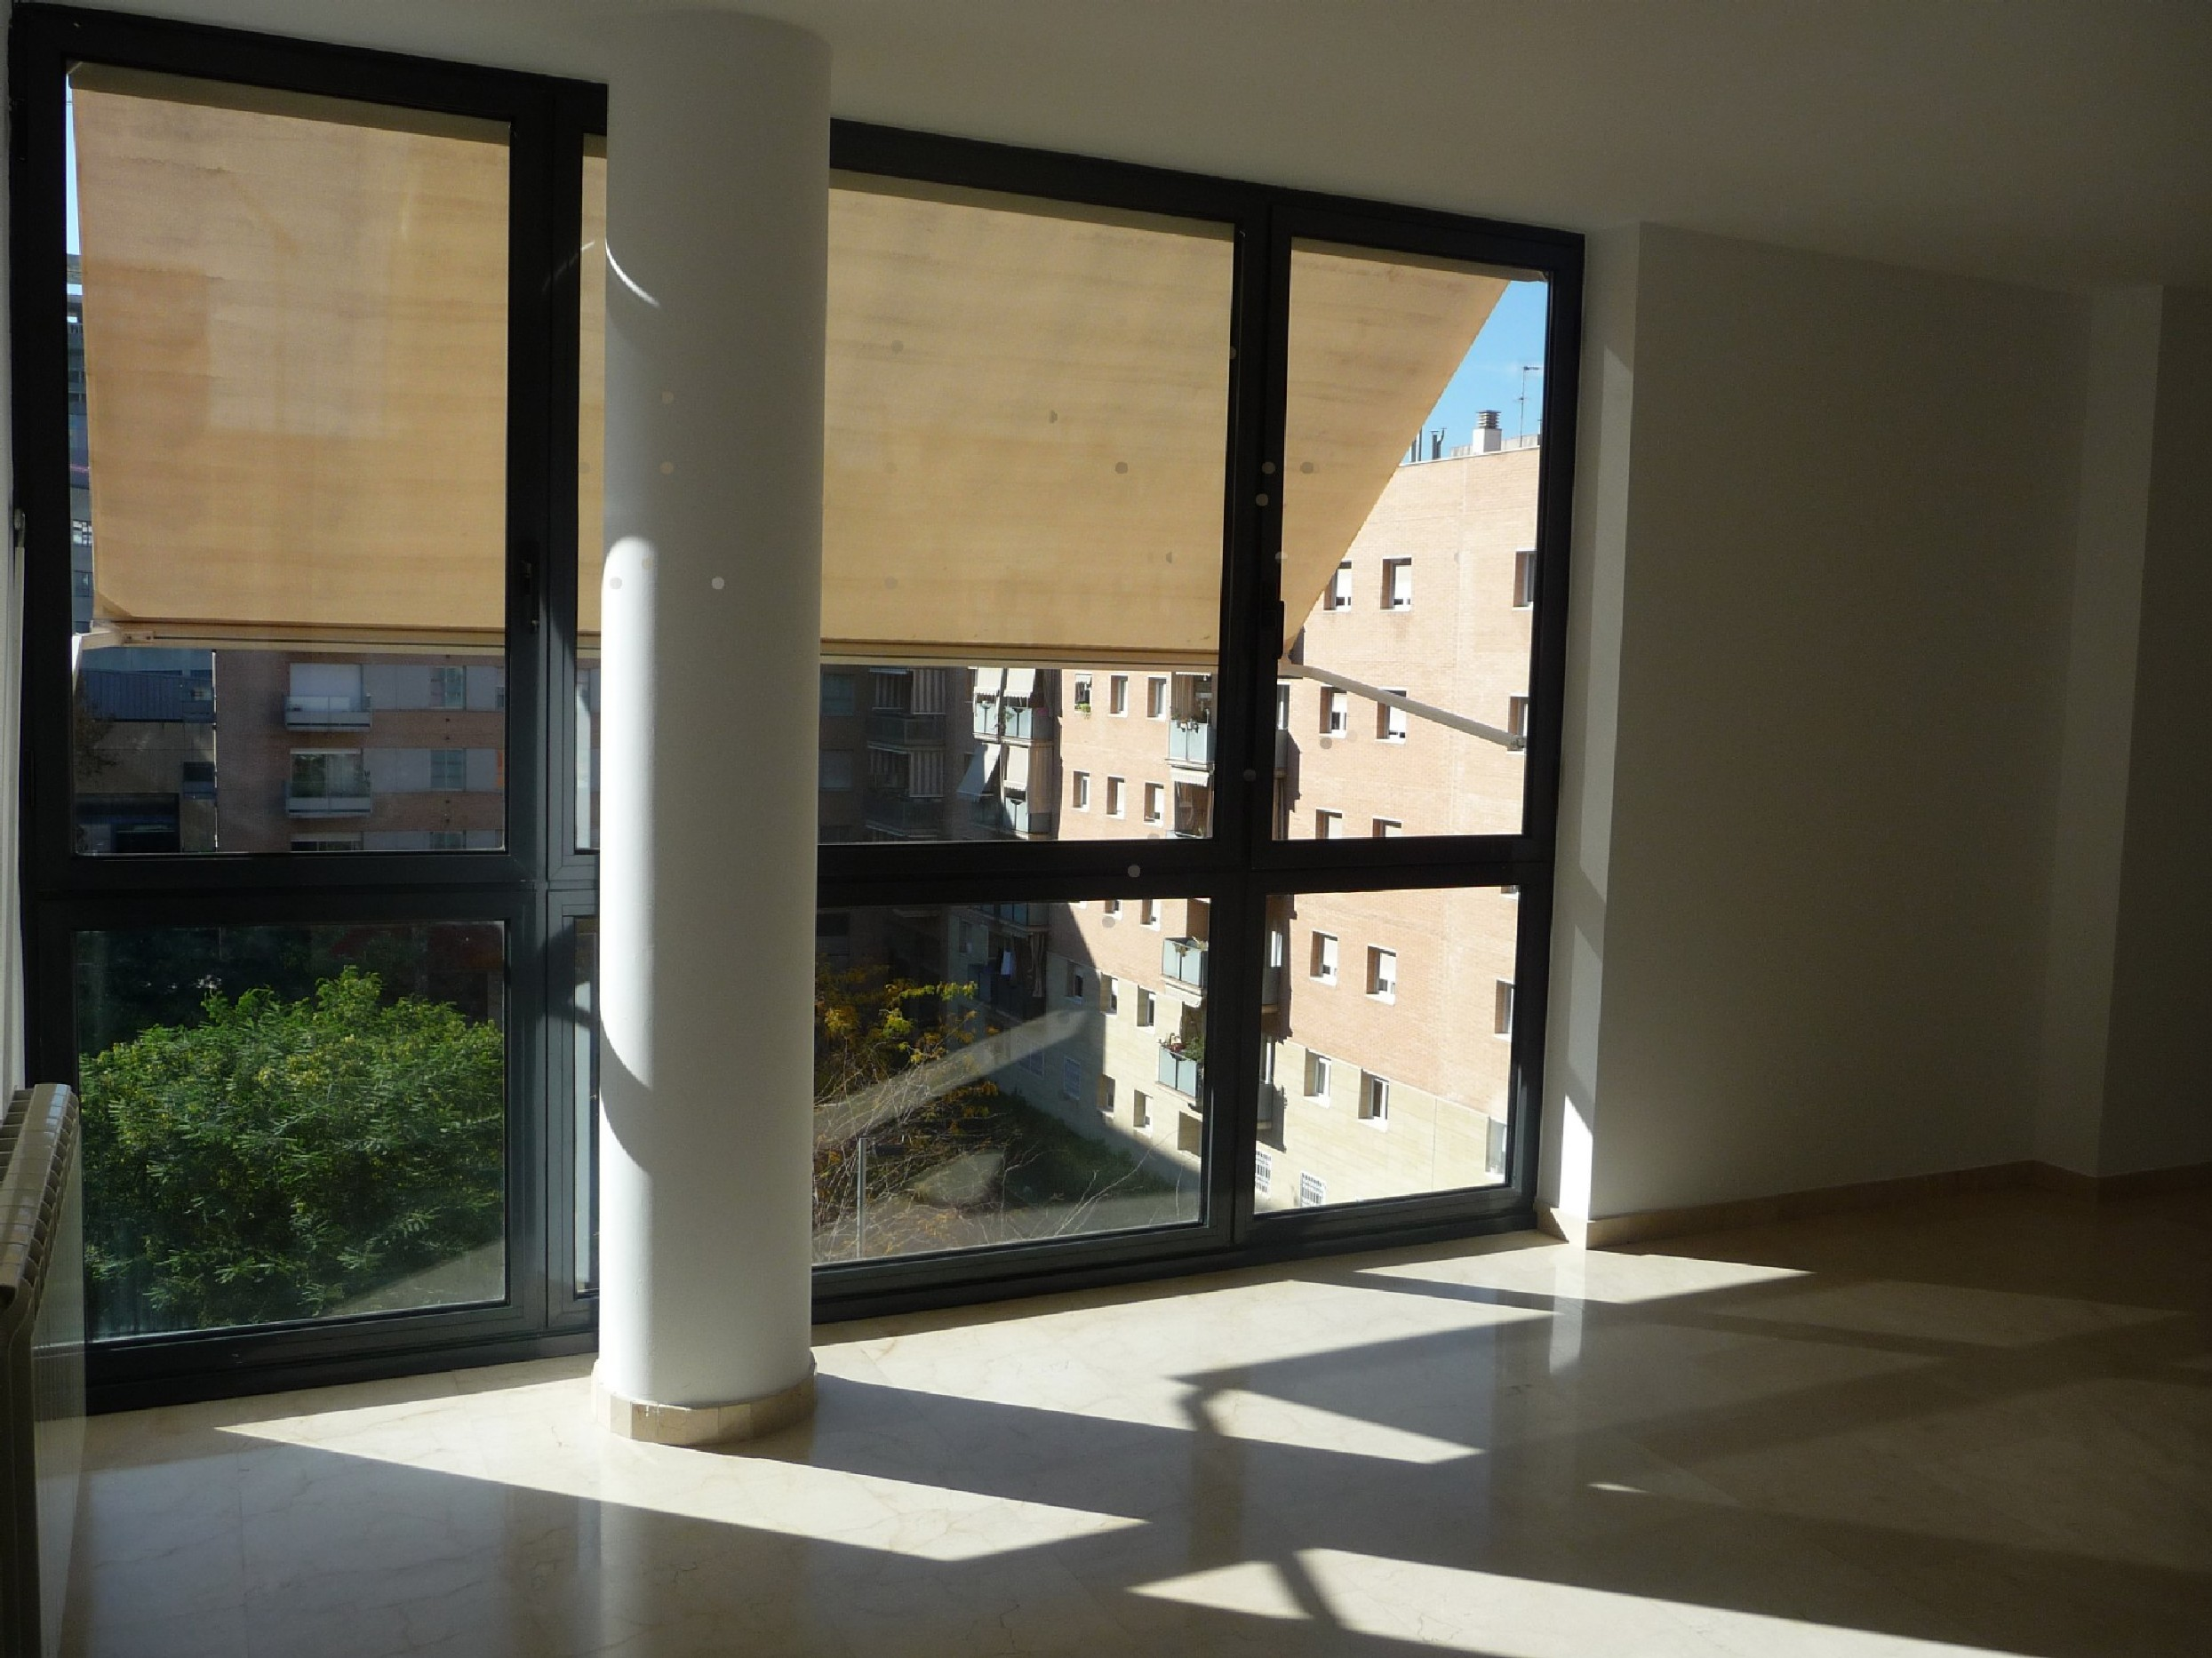 3 bedroom apartment for rent with terrace in sant marti barcelona for 3 bedrooms apartments for rent